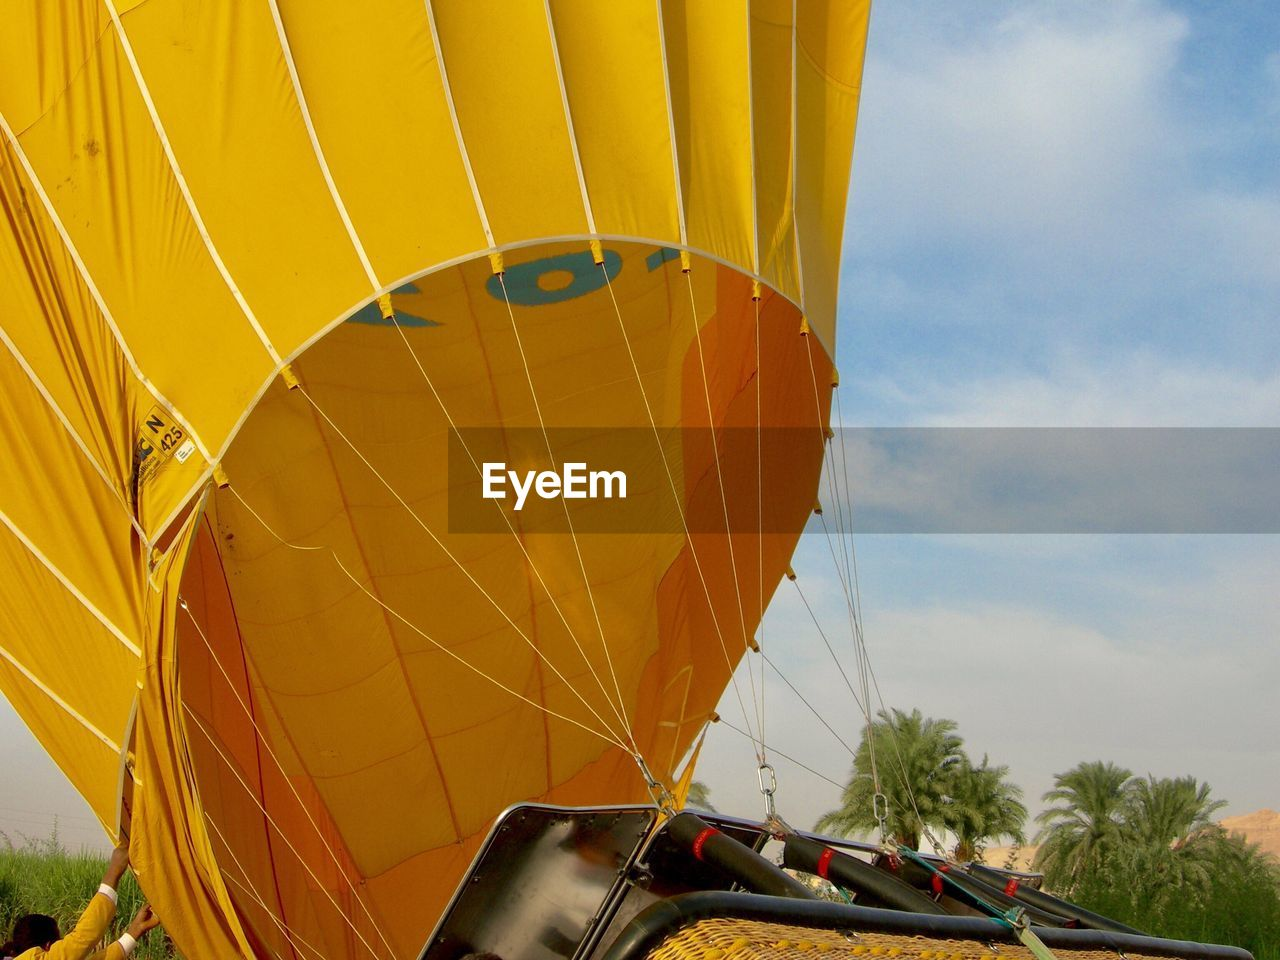 transportation, hot air balloon, balloon, sky, yellow, nature, air vehicle, adventure, day, mode of transportation, cloud - sky, low angle view, outdoors, extreme sports, no people, burning, fire, travel, inflating, flame